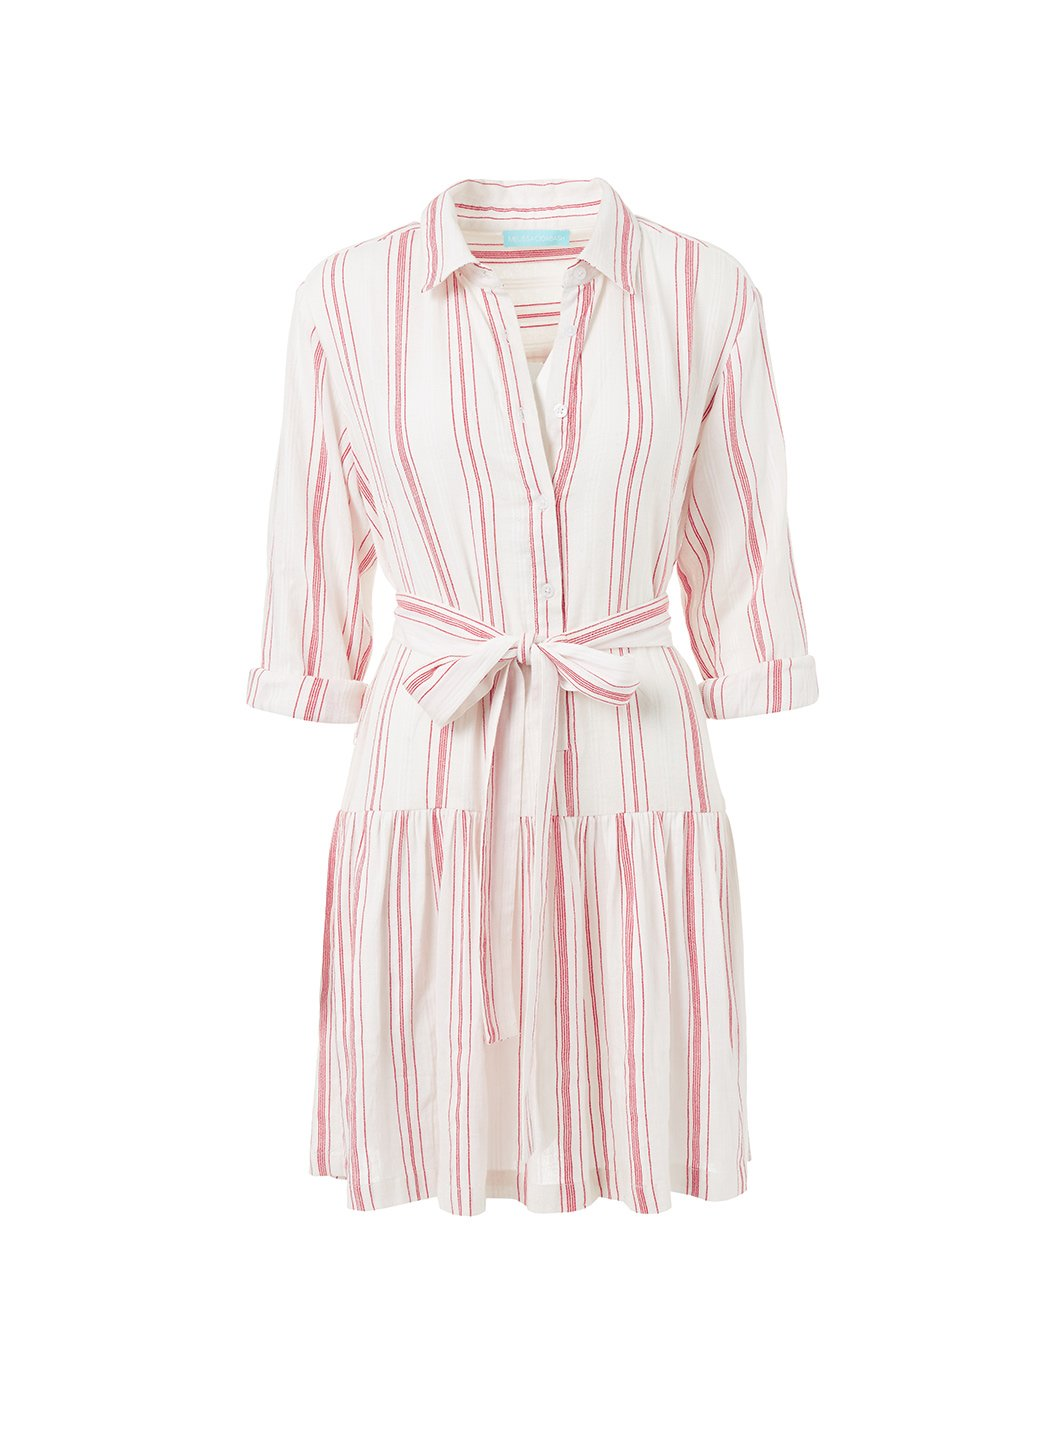 amelia red stripe short belted shirt dress 2019